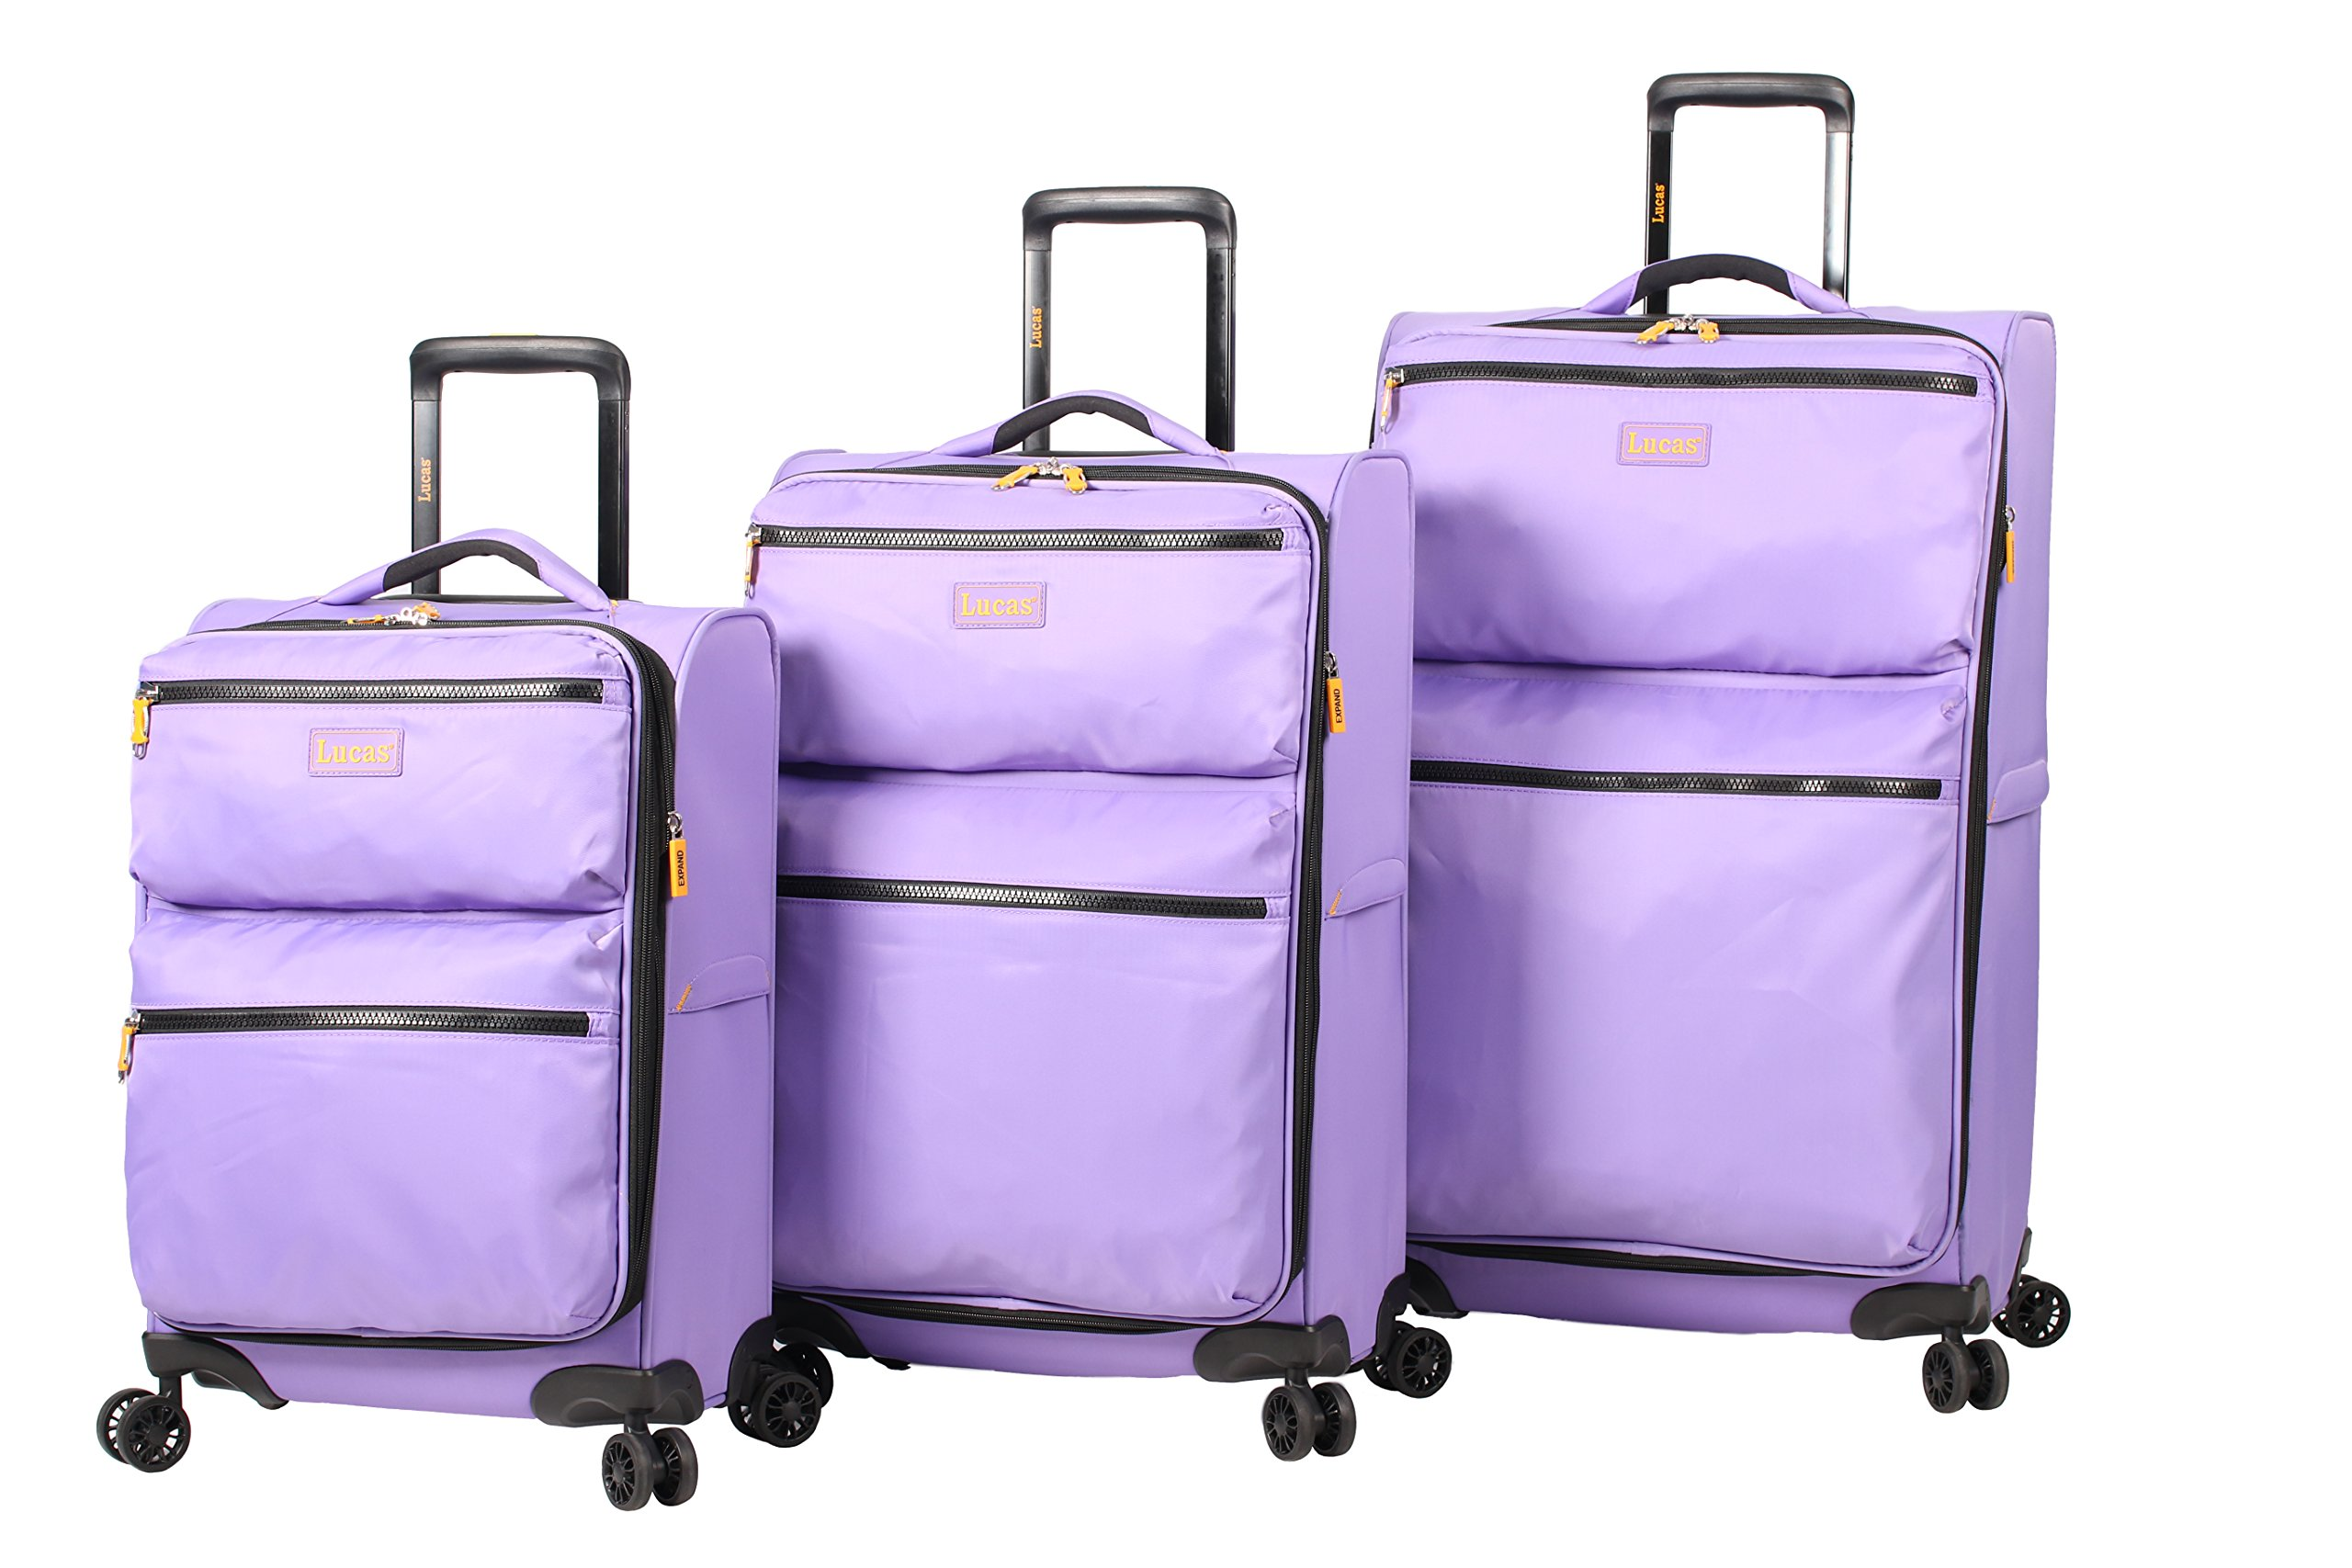 Lucas Ultra Lightweight 3 Piece Expandable Suitcase set With Spinner Wheels (One Size, Lavander)